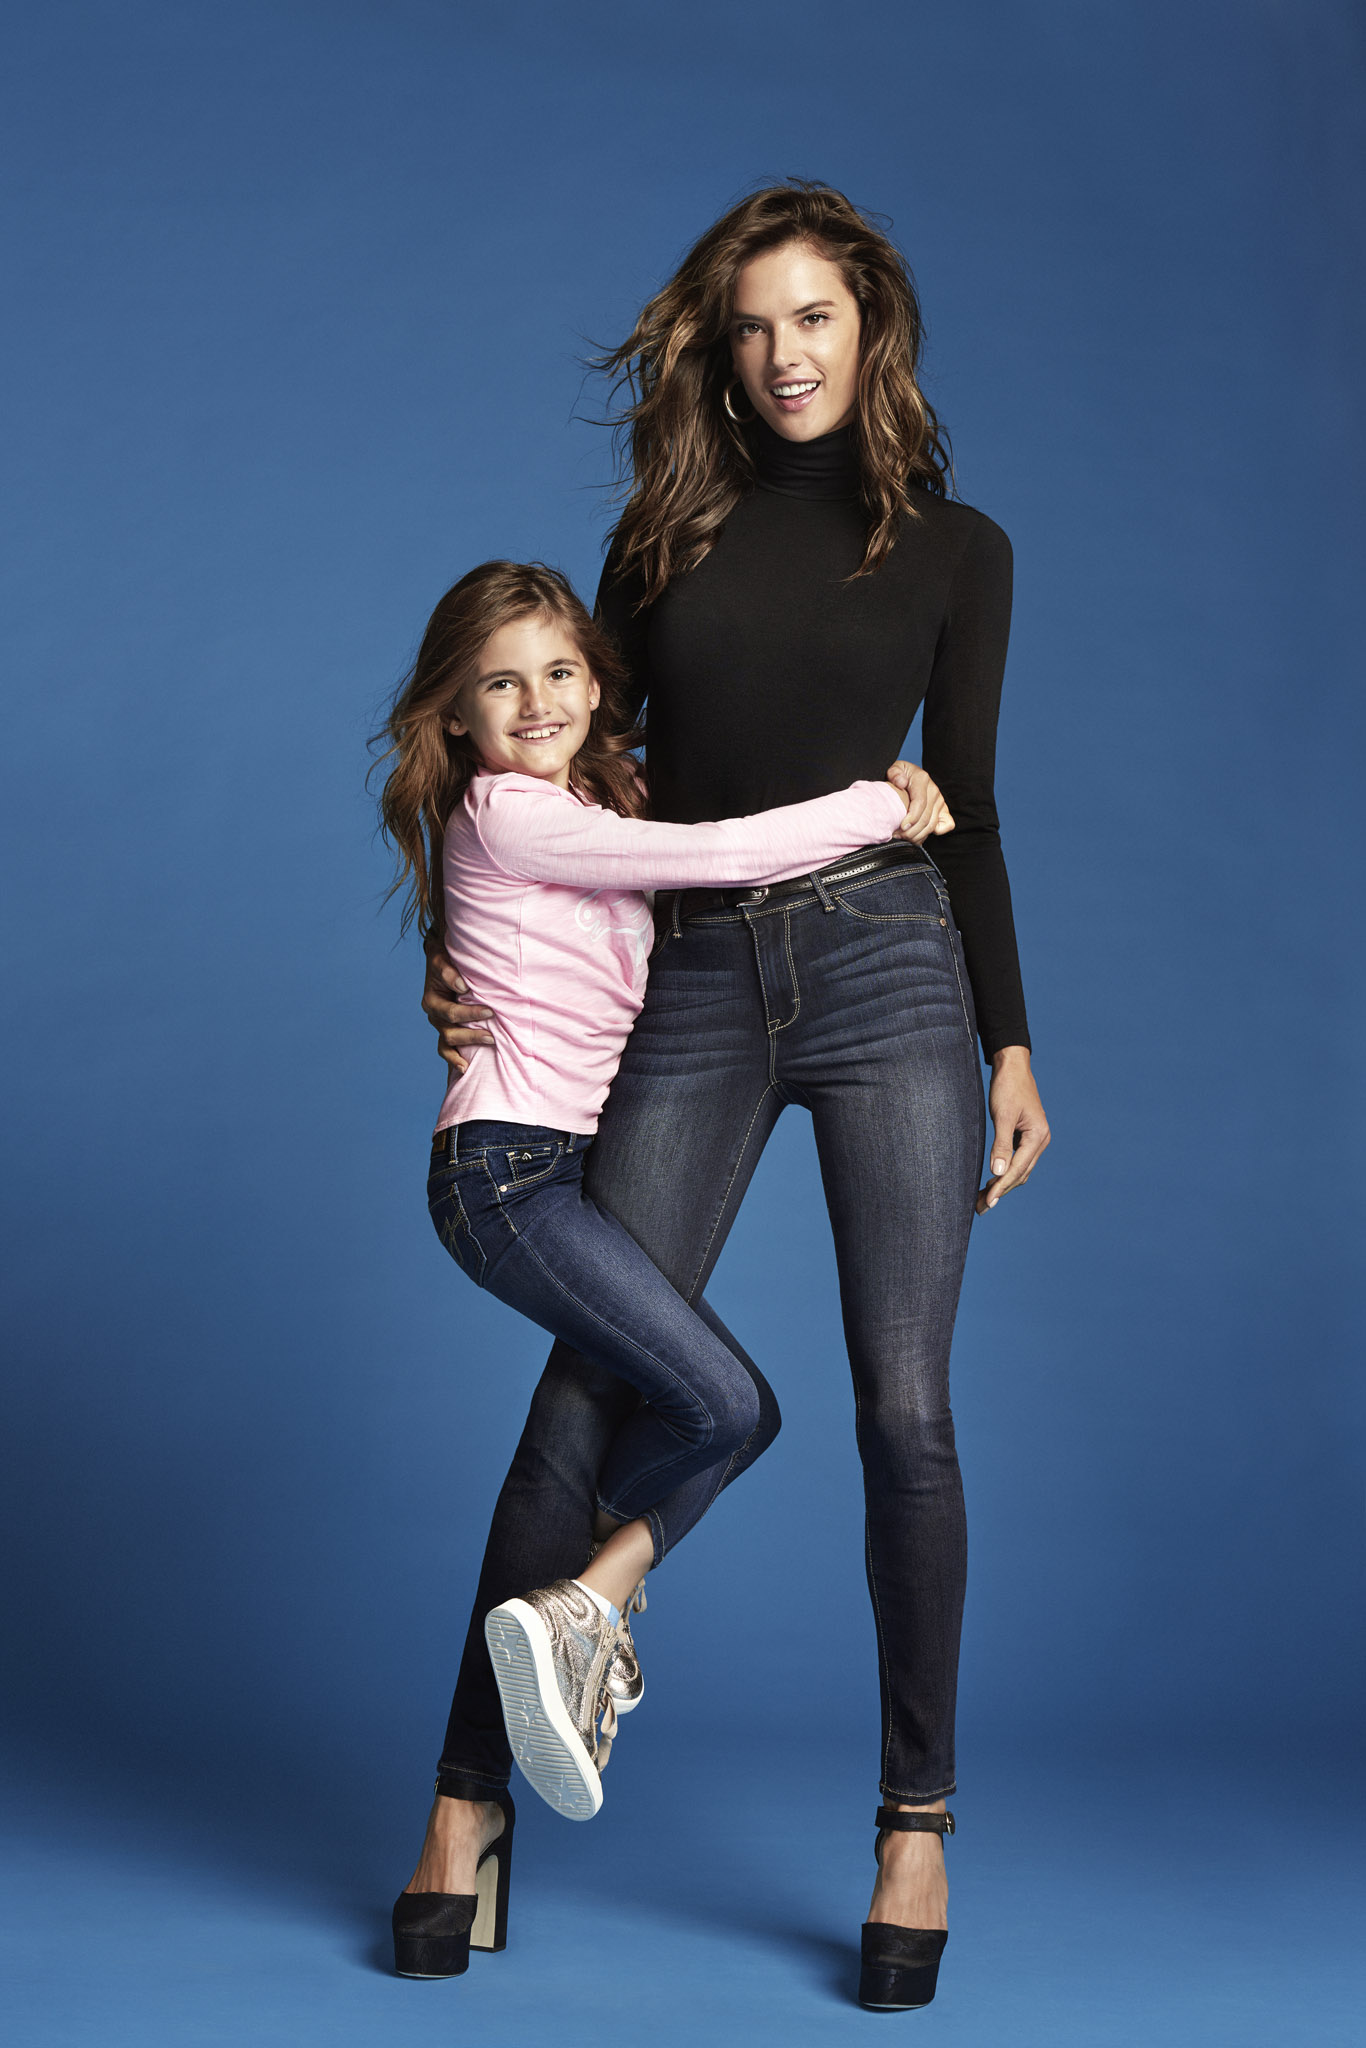 Jordache campaign featuring Alessandra Ambrosio and her daughter